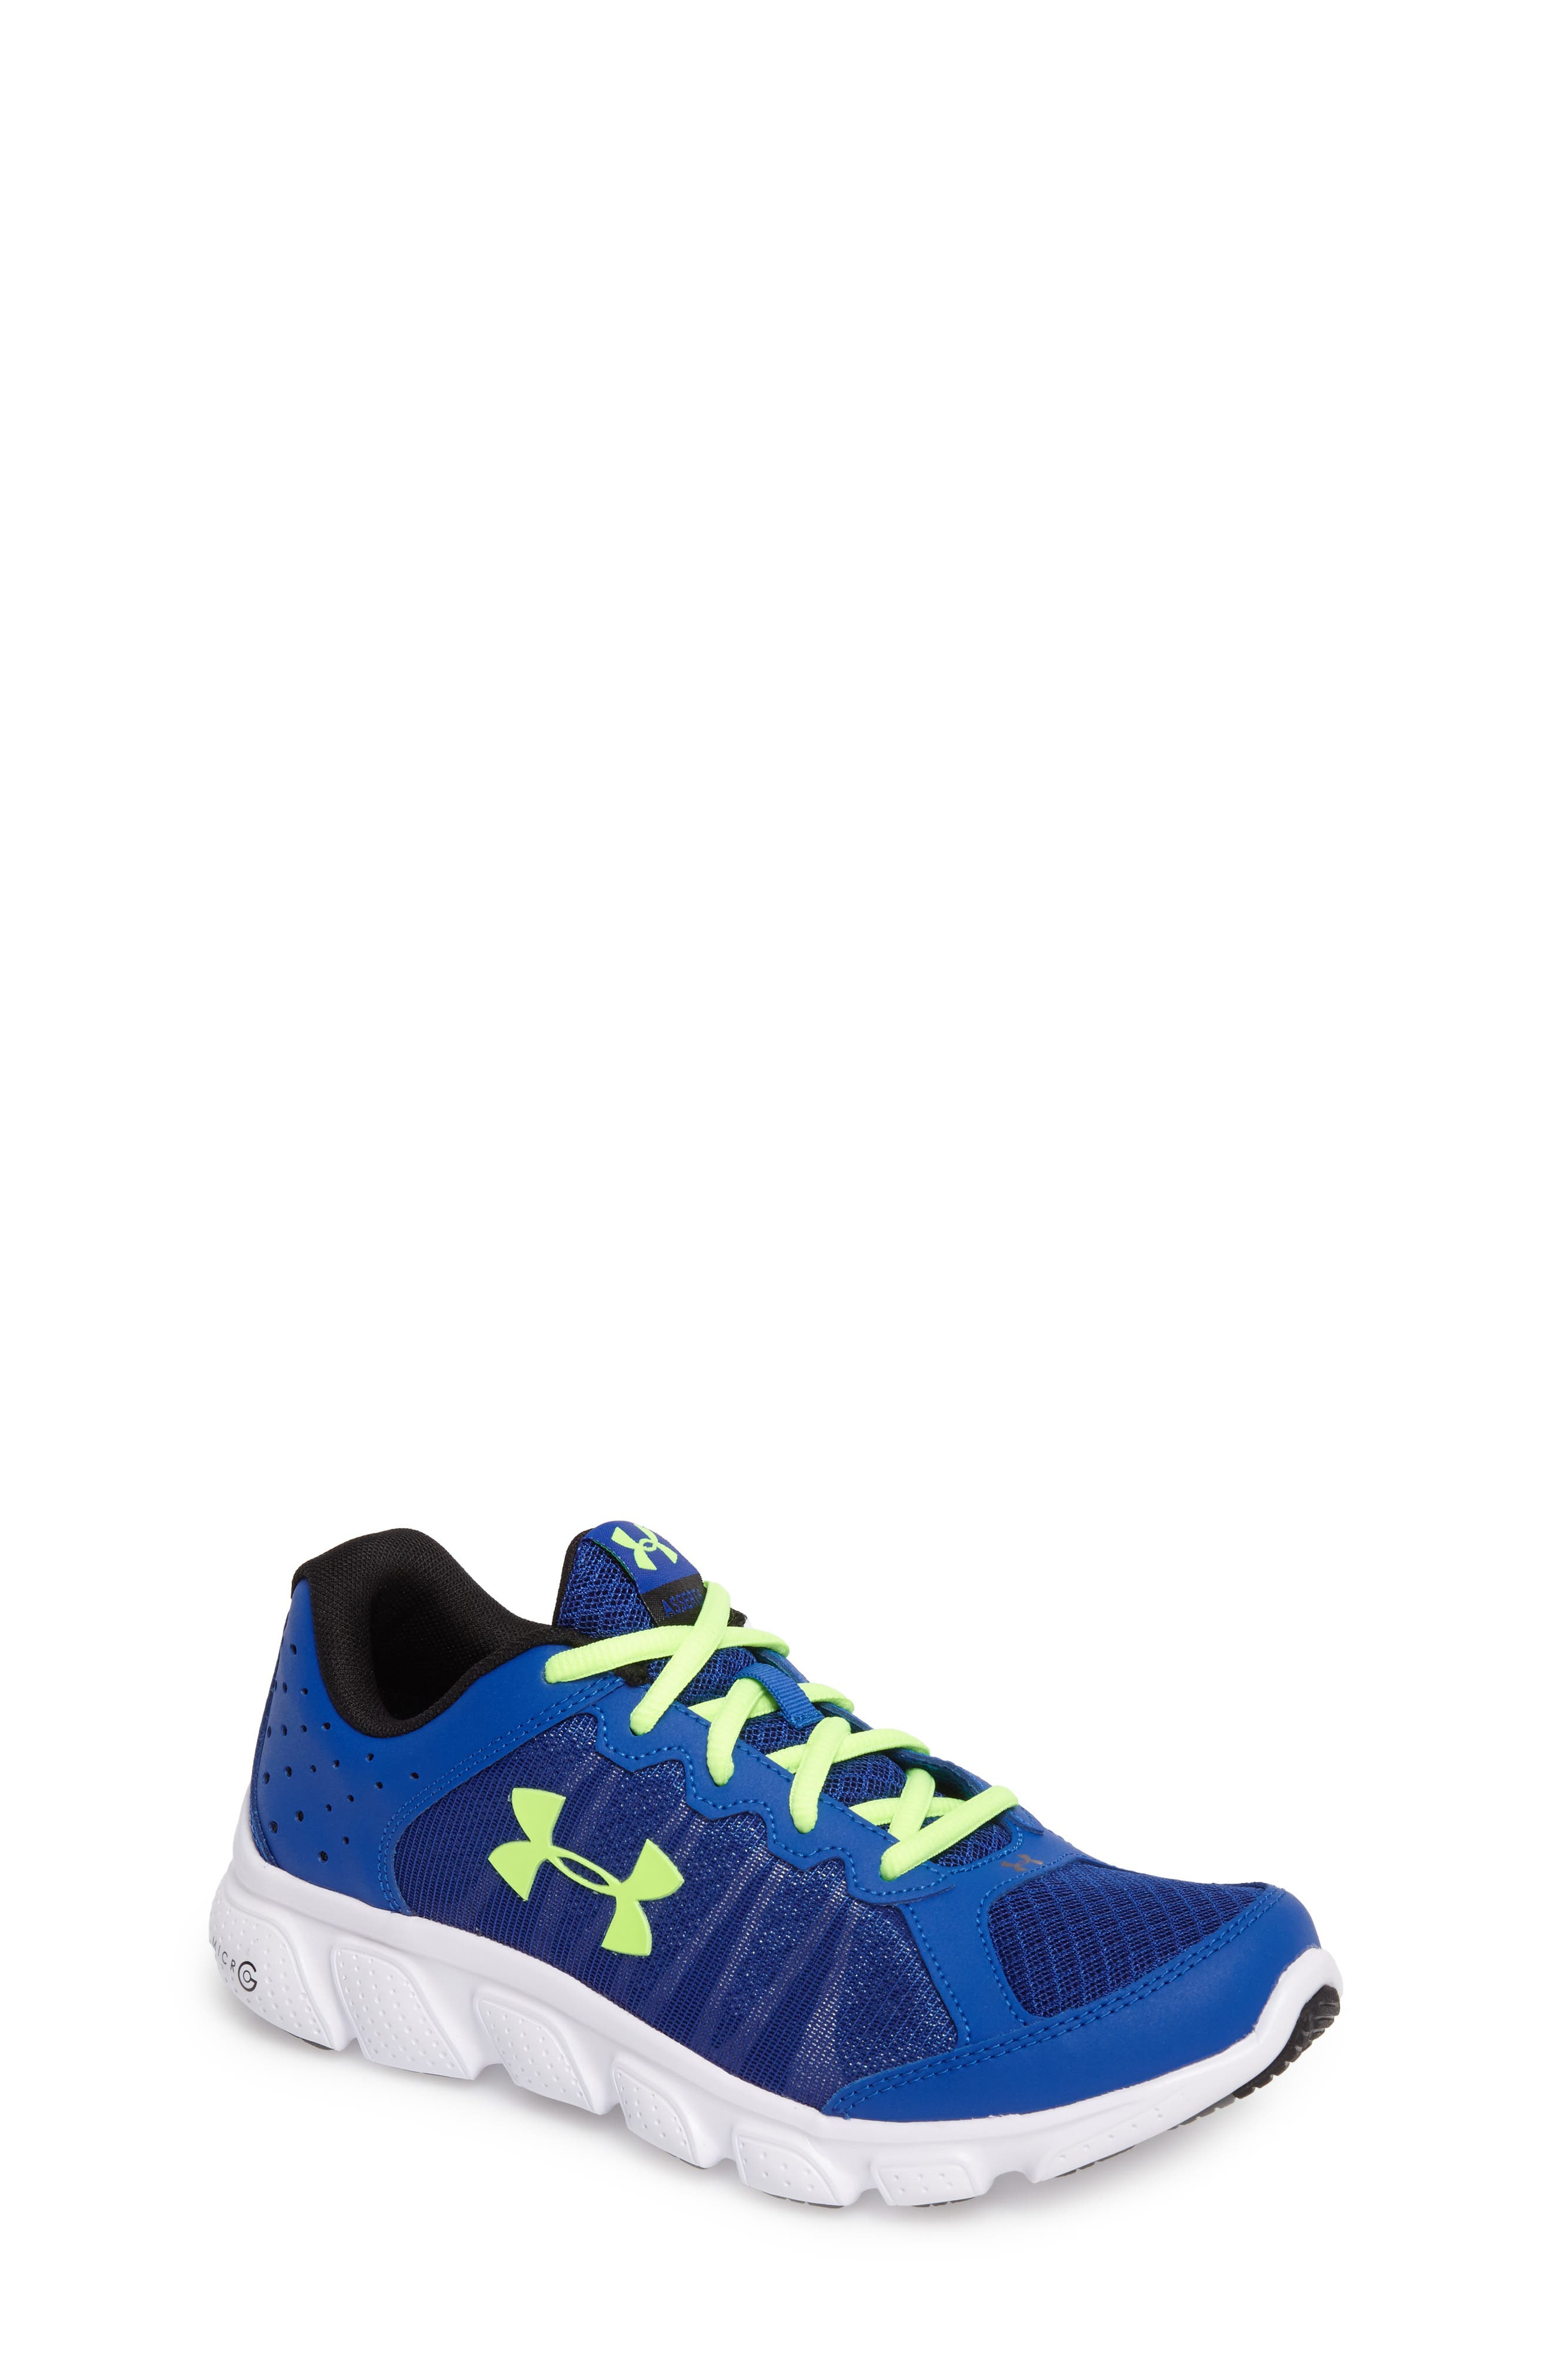 Alternate Image 1 Selected - Under Armour 'Micro G® Assert VI' Running Shoe (Big Kid)